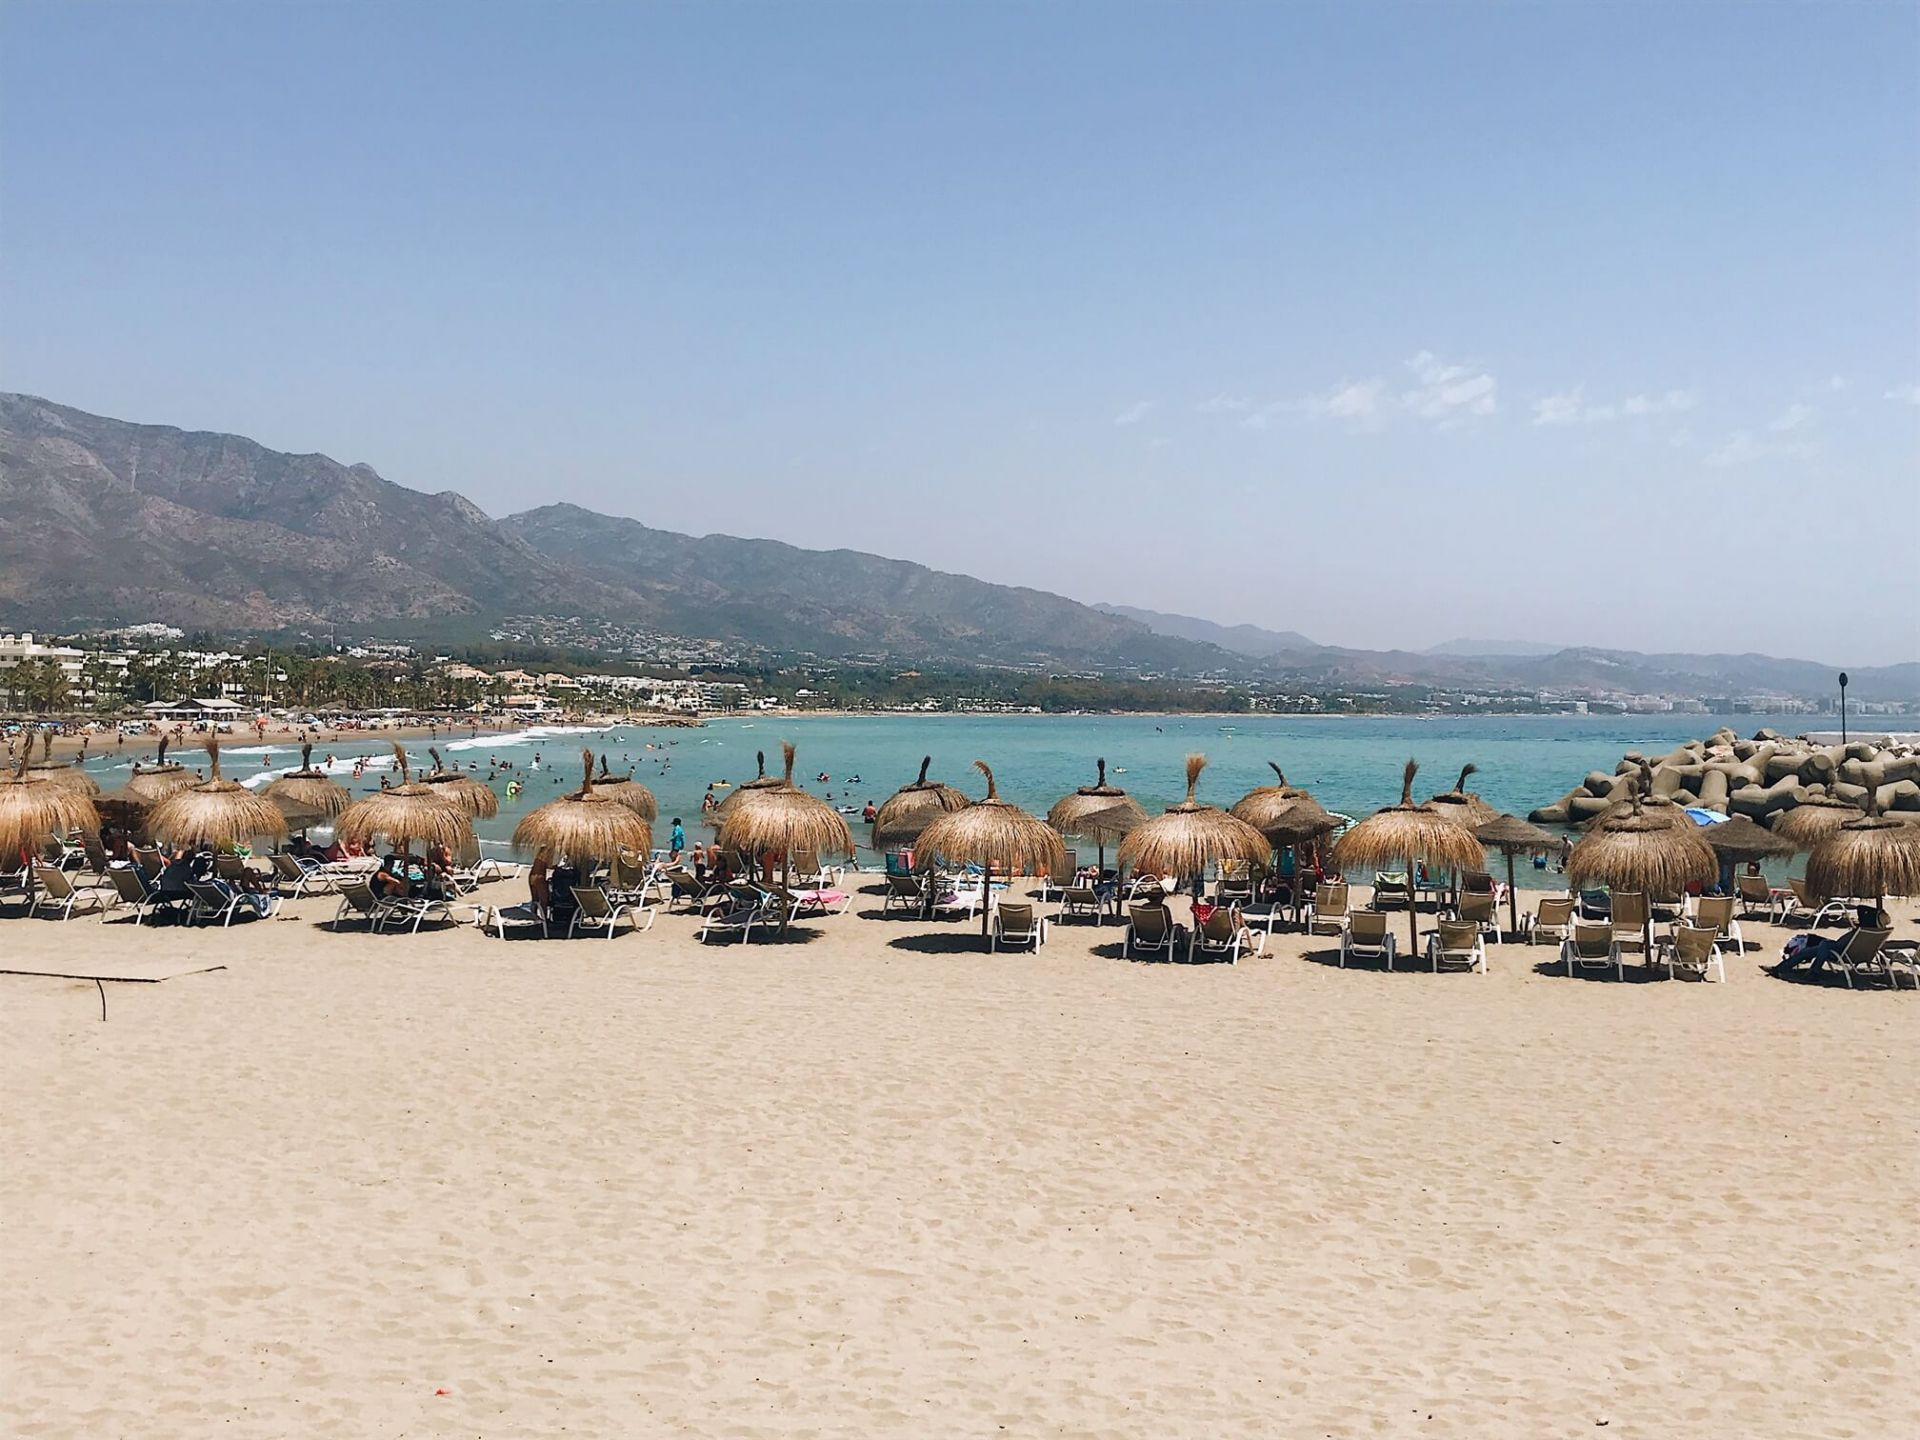 Lavante Beach (things to do in Marbella Spain)